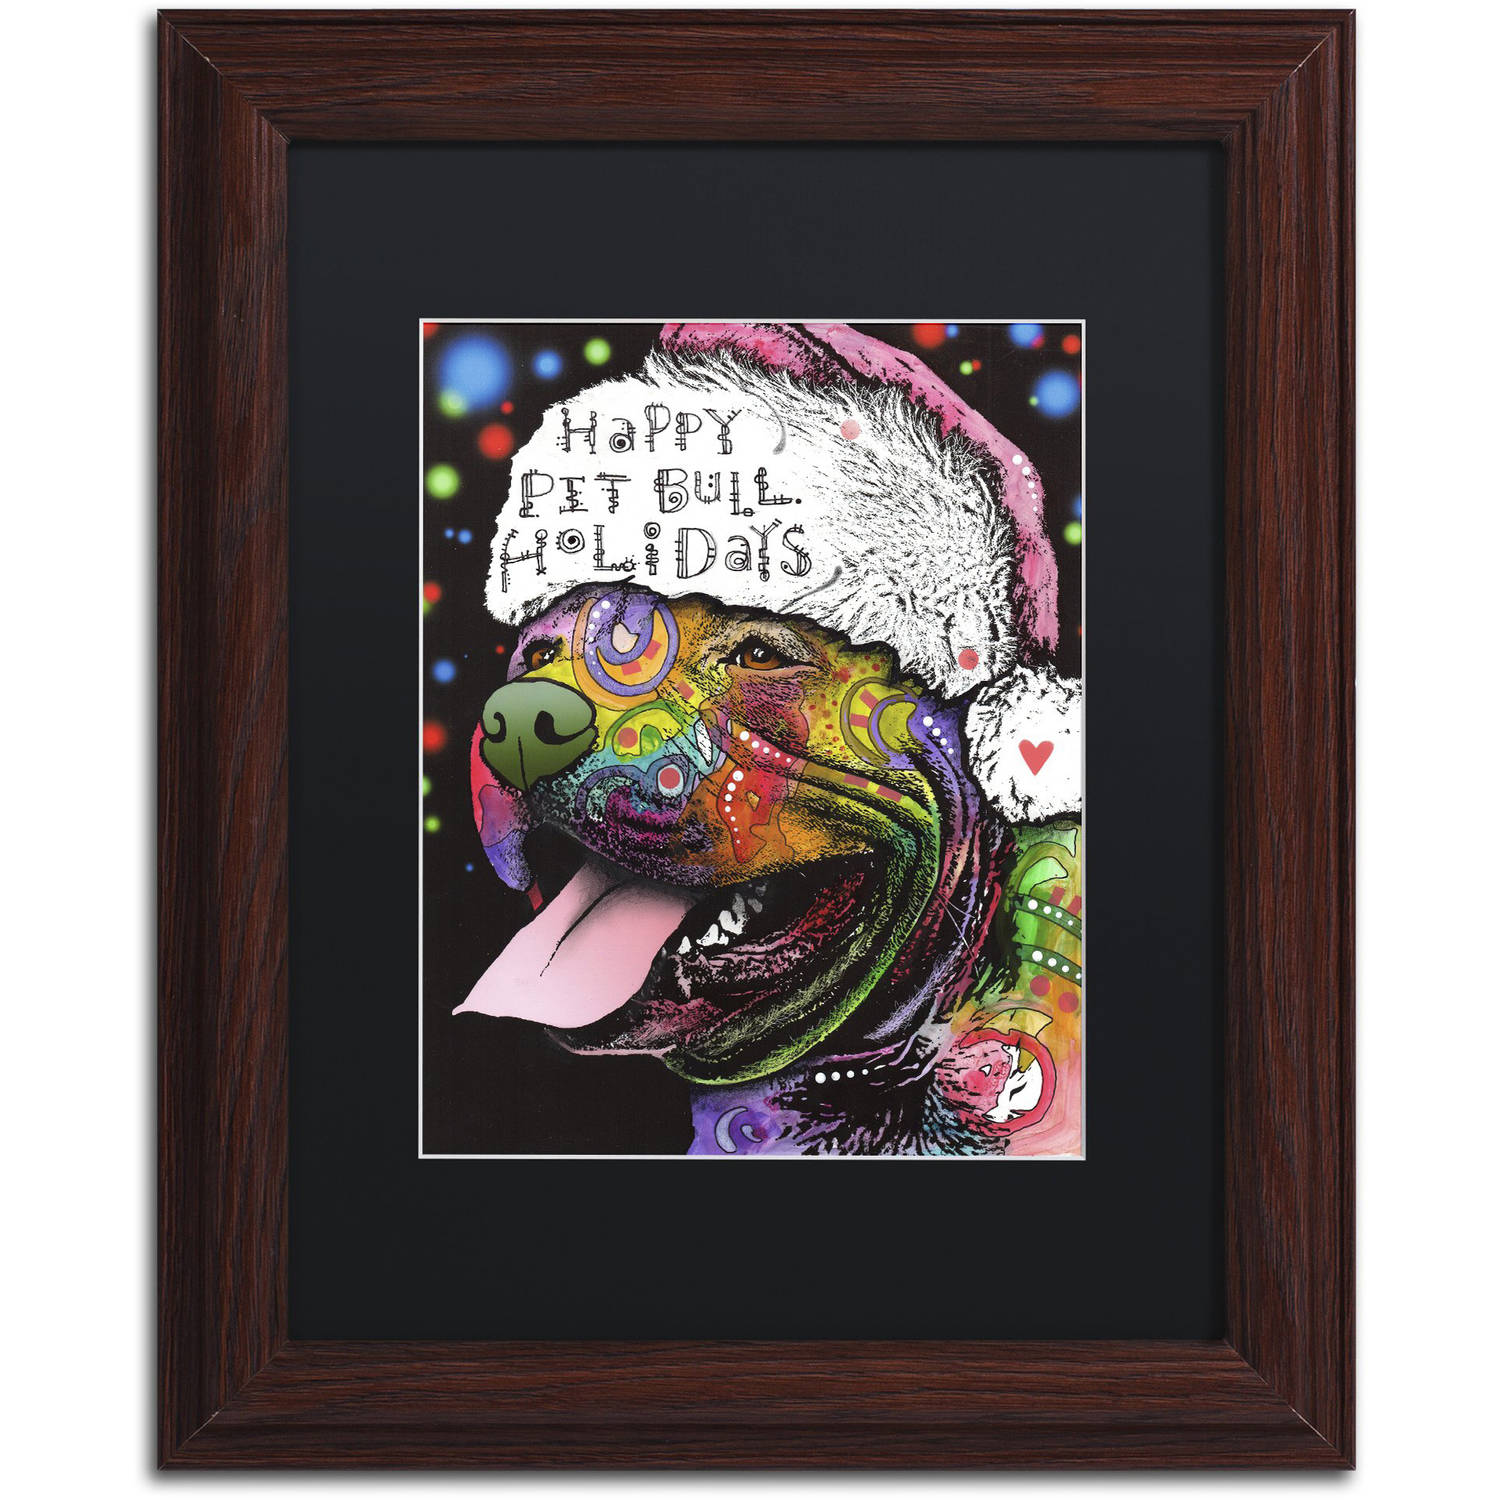 Trademark Fine Art 'Christmas Pitbull' Canvas Art by Dean Russo, Black Matte, Wood Frame